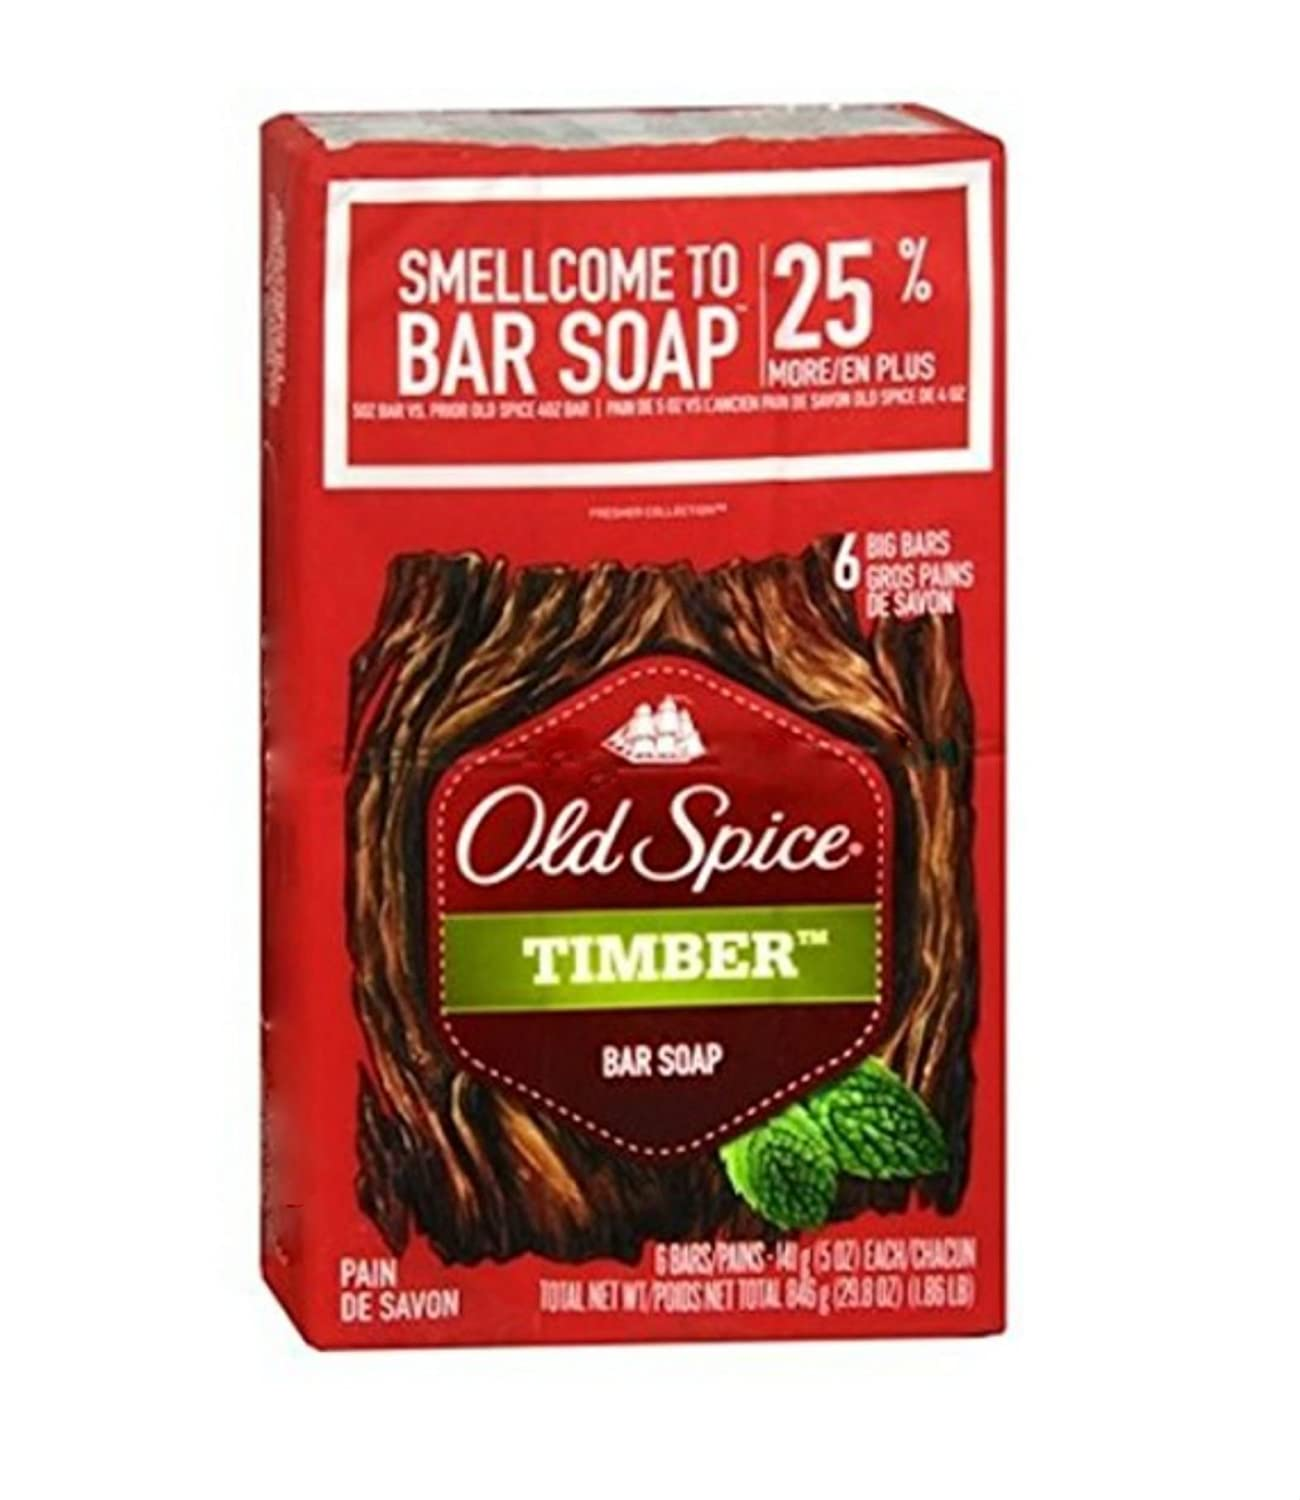 Box of Old Spice Timber Bar Soap for men, six-pack